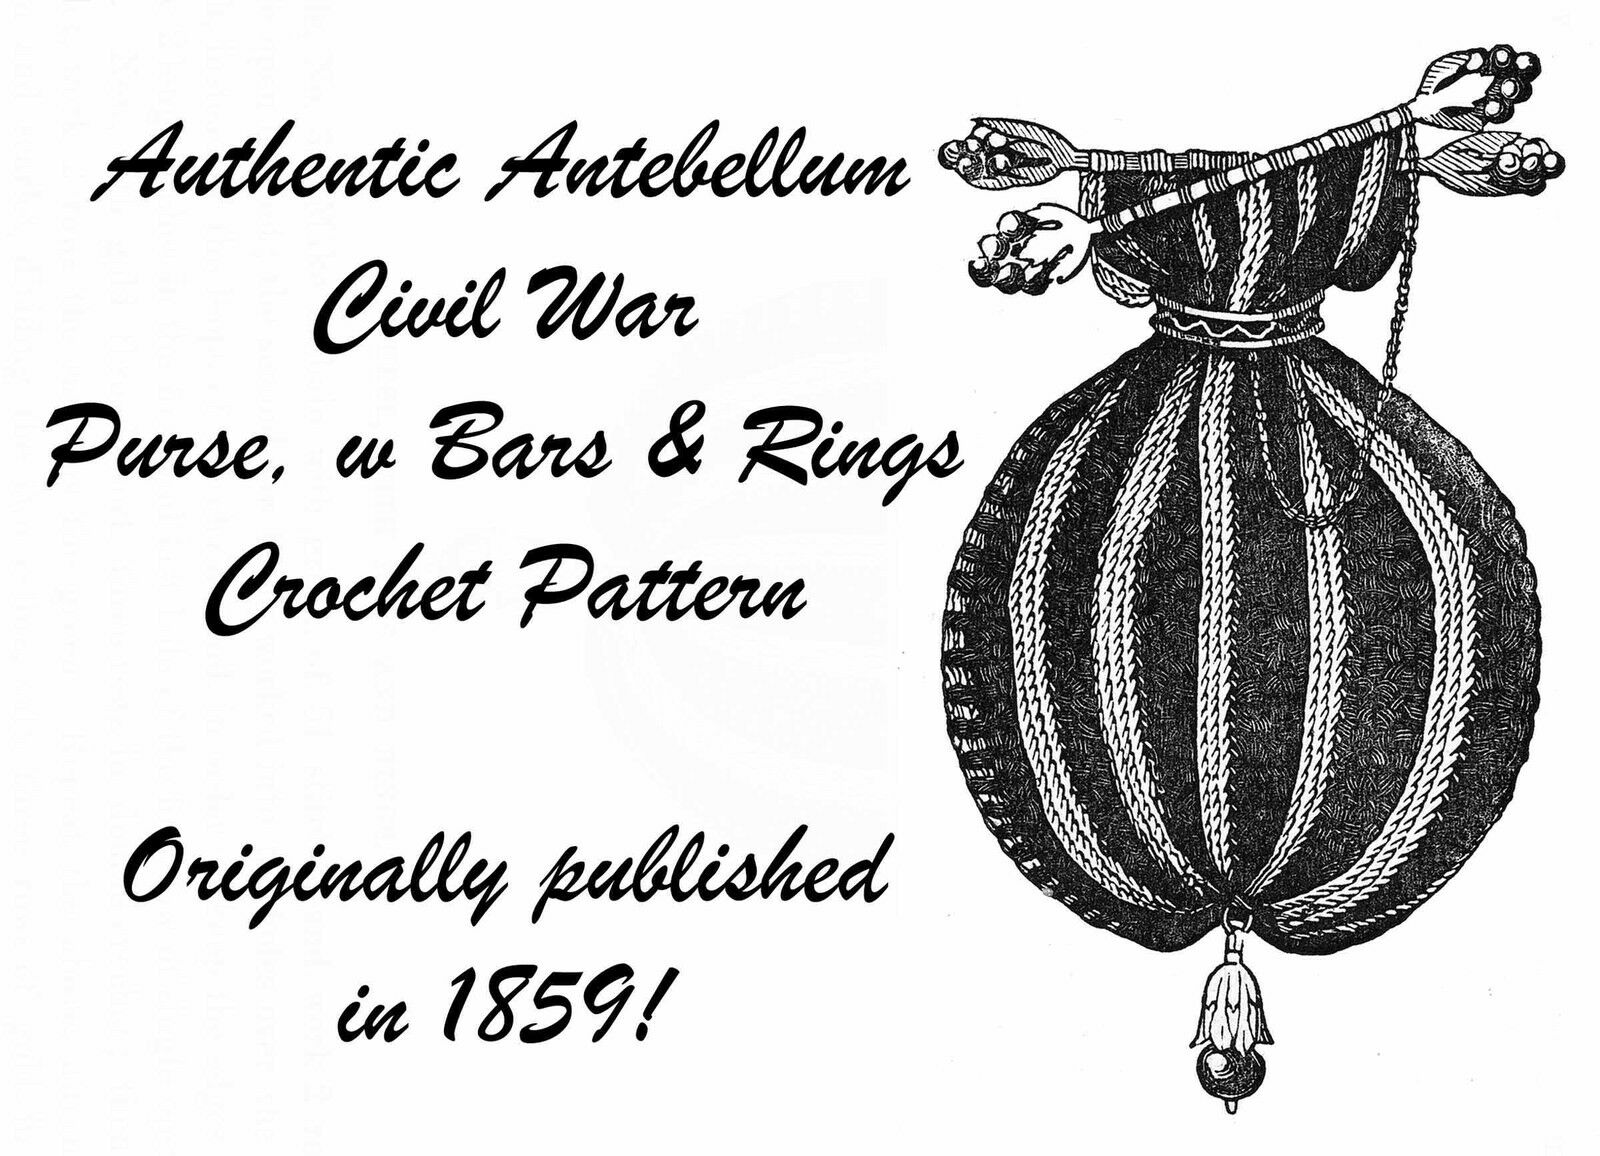 Wisteria lane house floor plans furthermore Historia besides 1940s Hairstyles Book Swing Era together with Antebellum Civil War Purse Crochet Pattern Reticule1859 140445842159 moreover Mainmississippi. on antebellum south